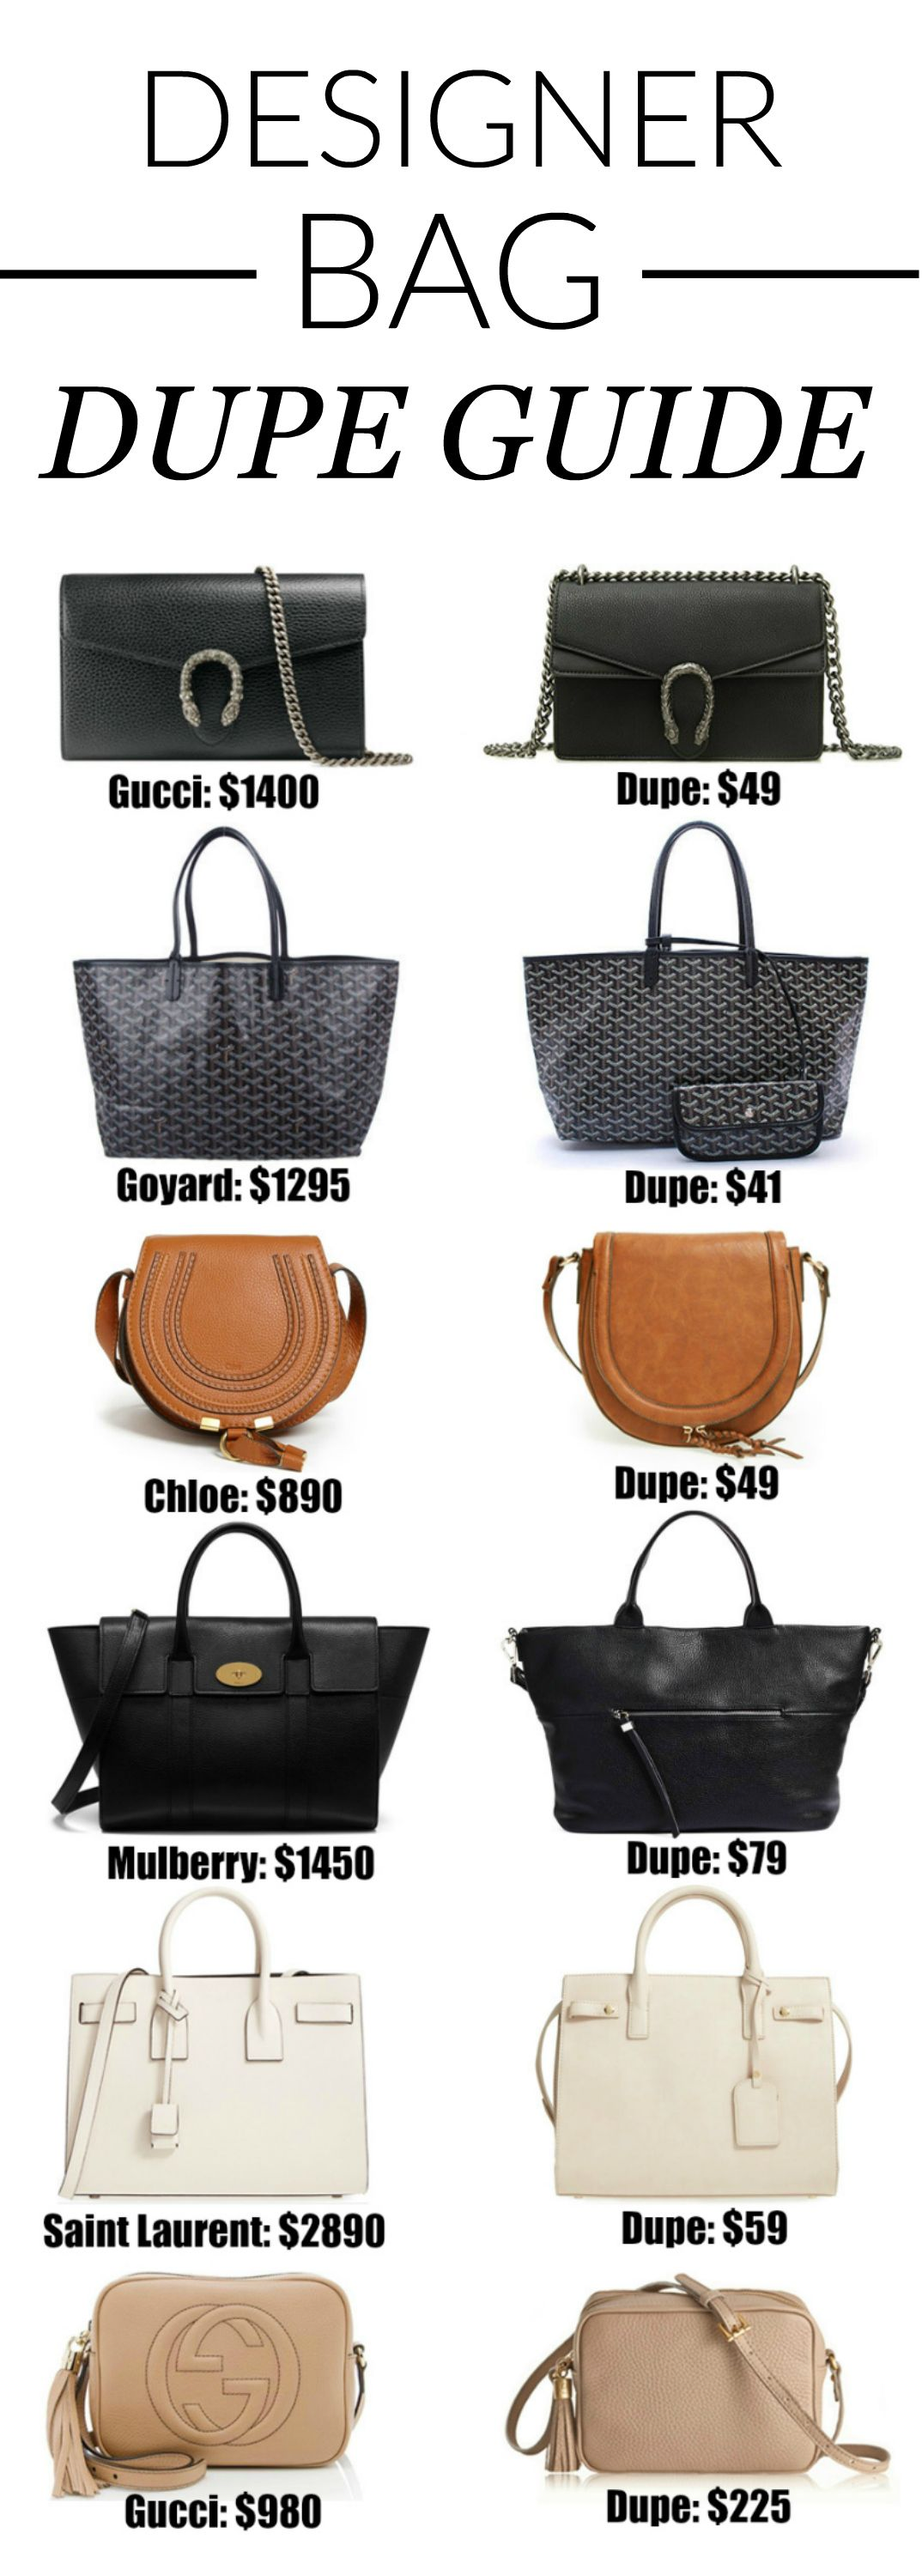 71374a931 The Ultimate Designer Bag Dupes Guide | InfluenceHer Collective ...